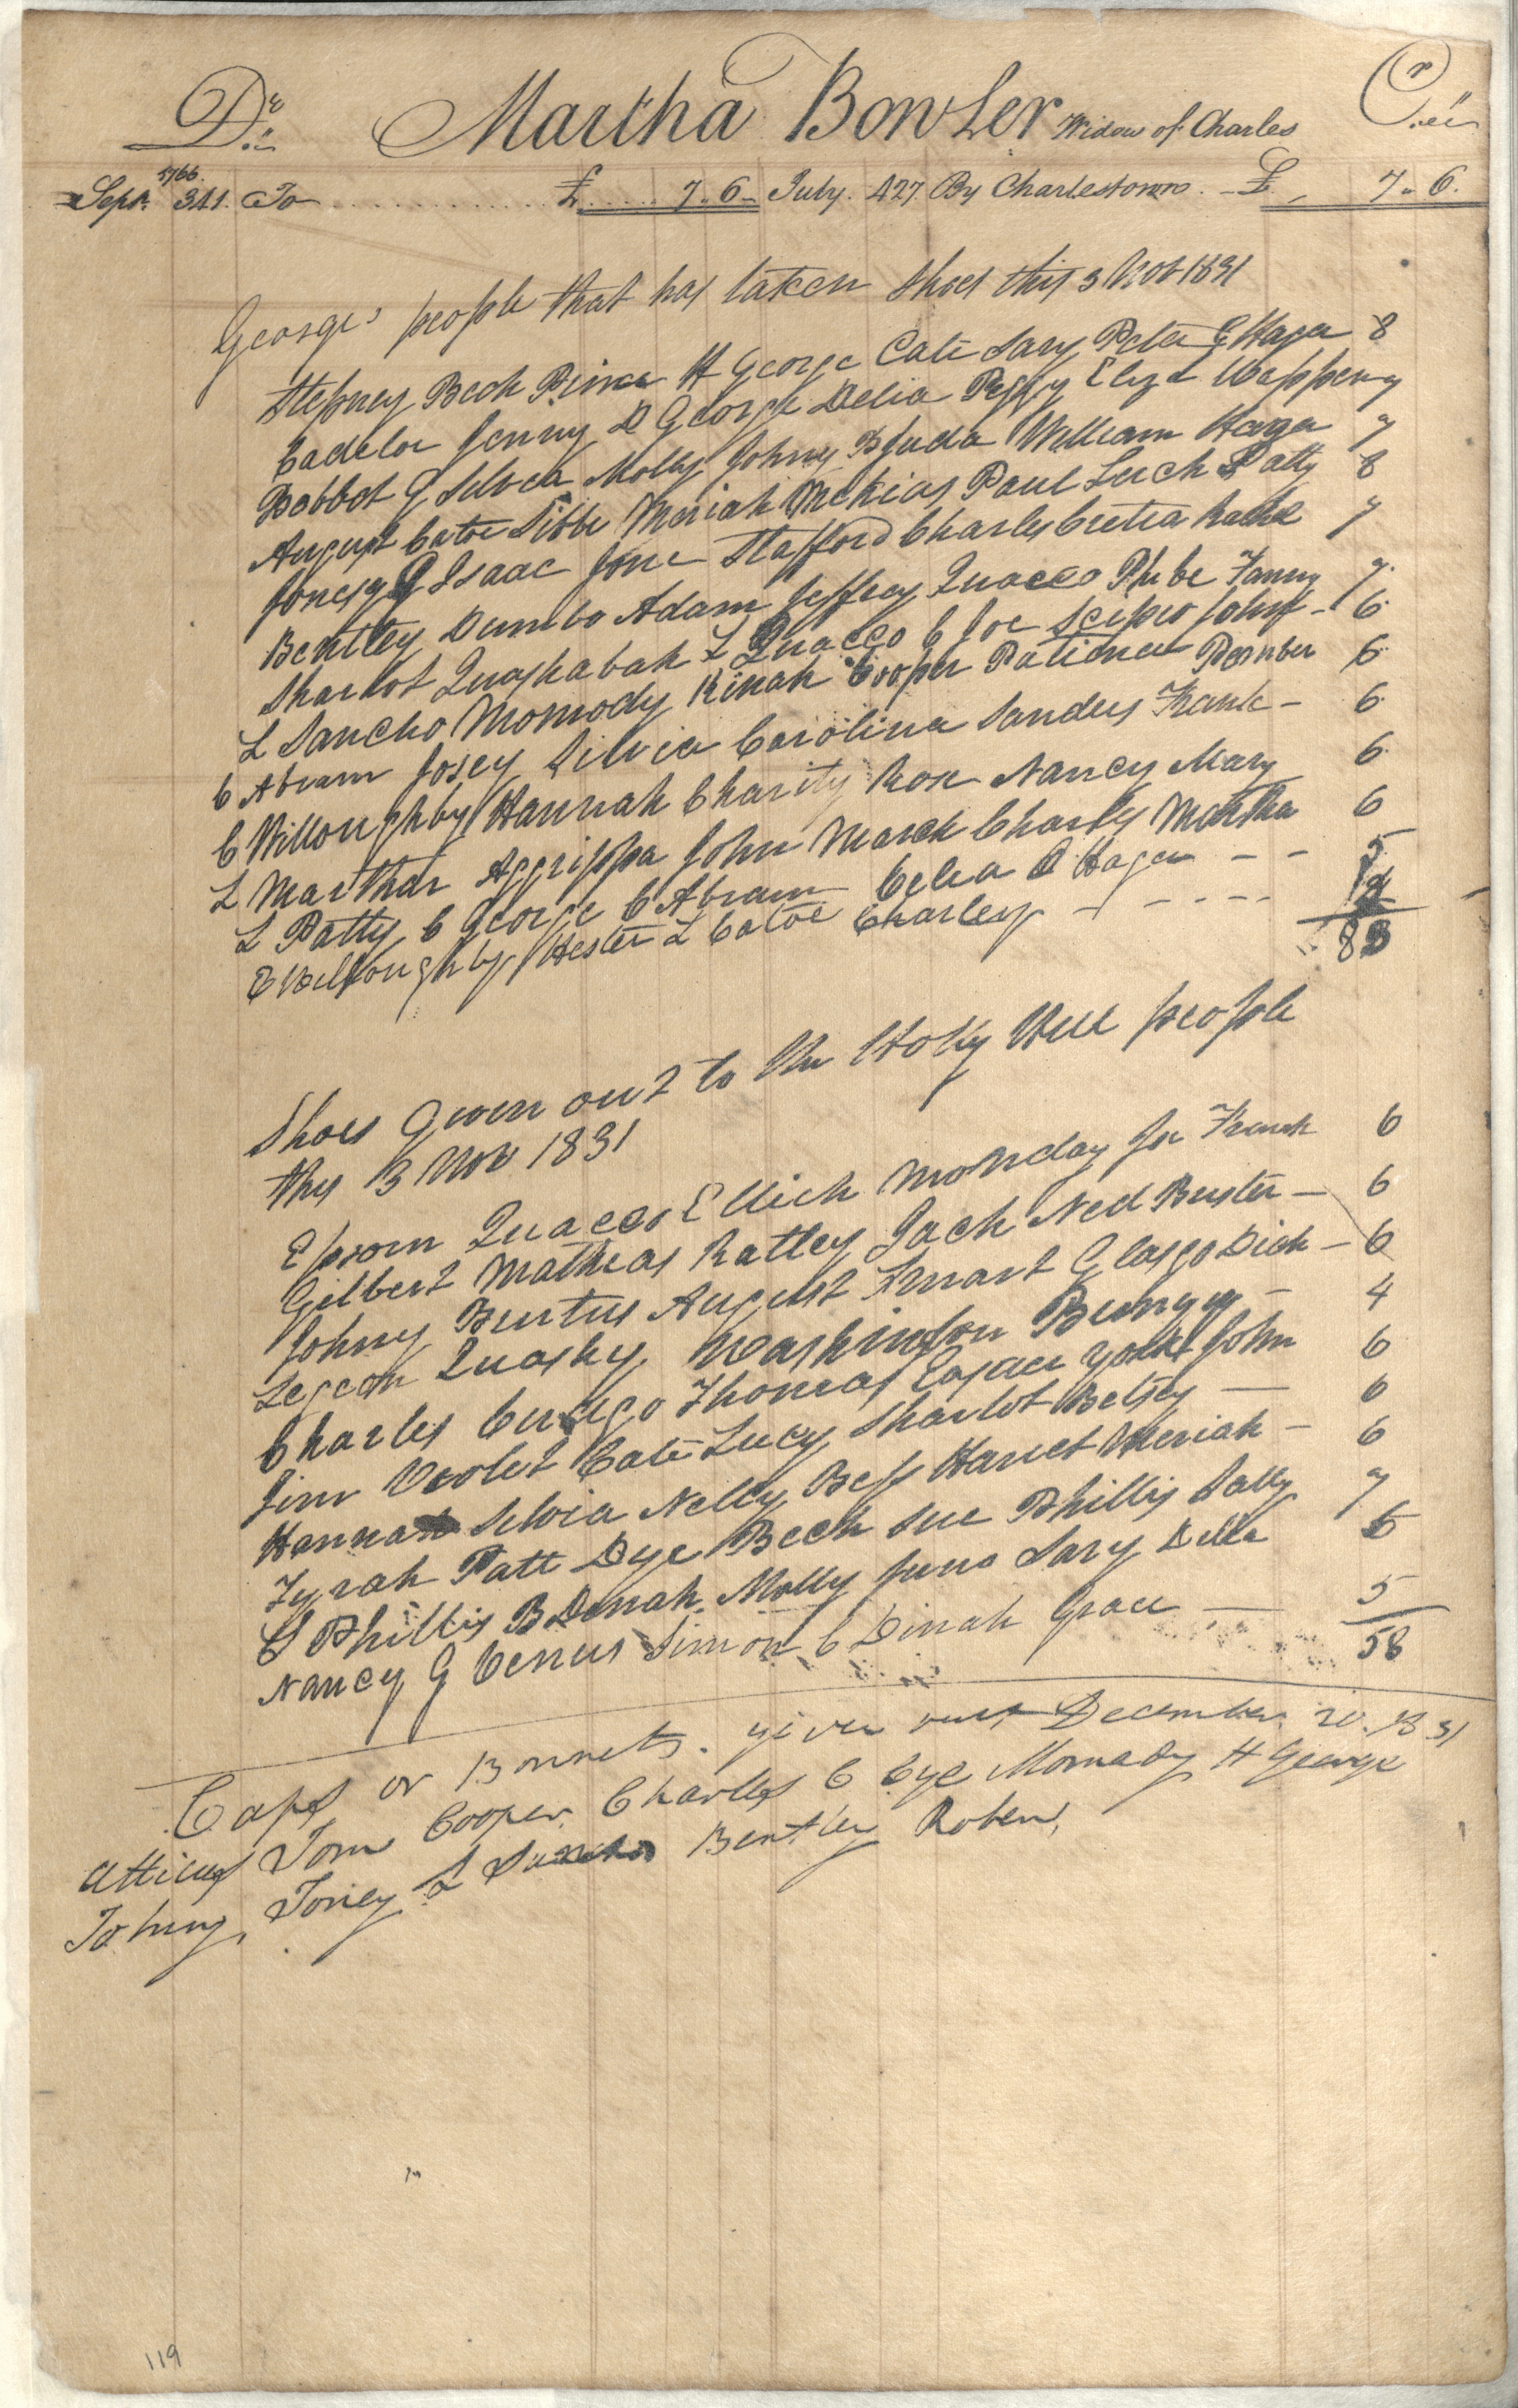 Plowden Weston's Business Ledger, page 260